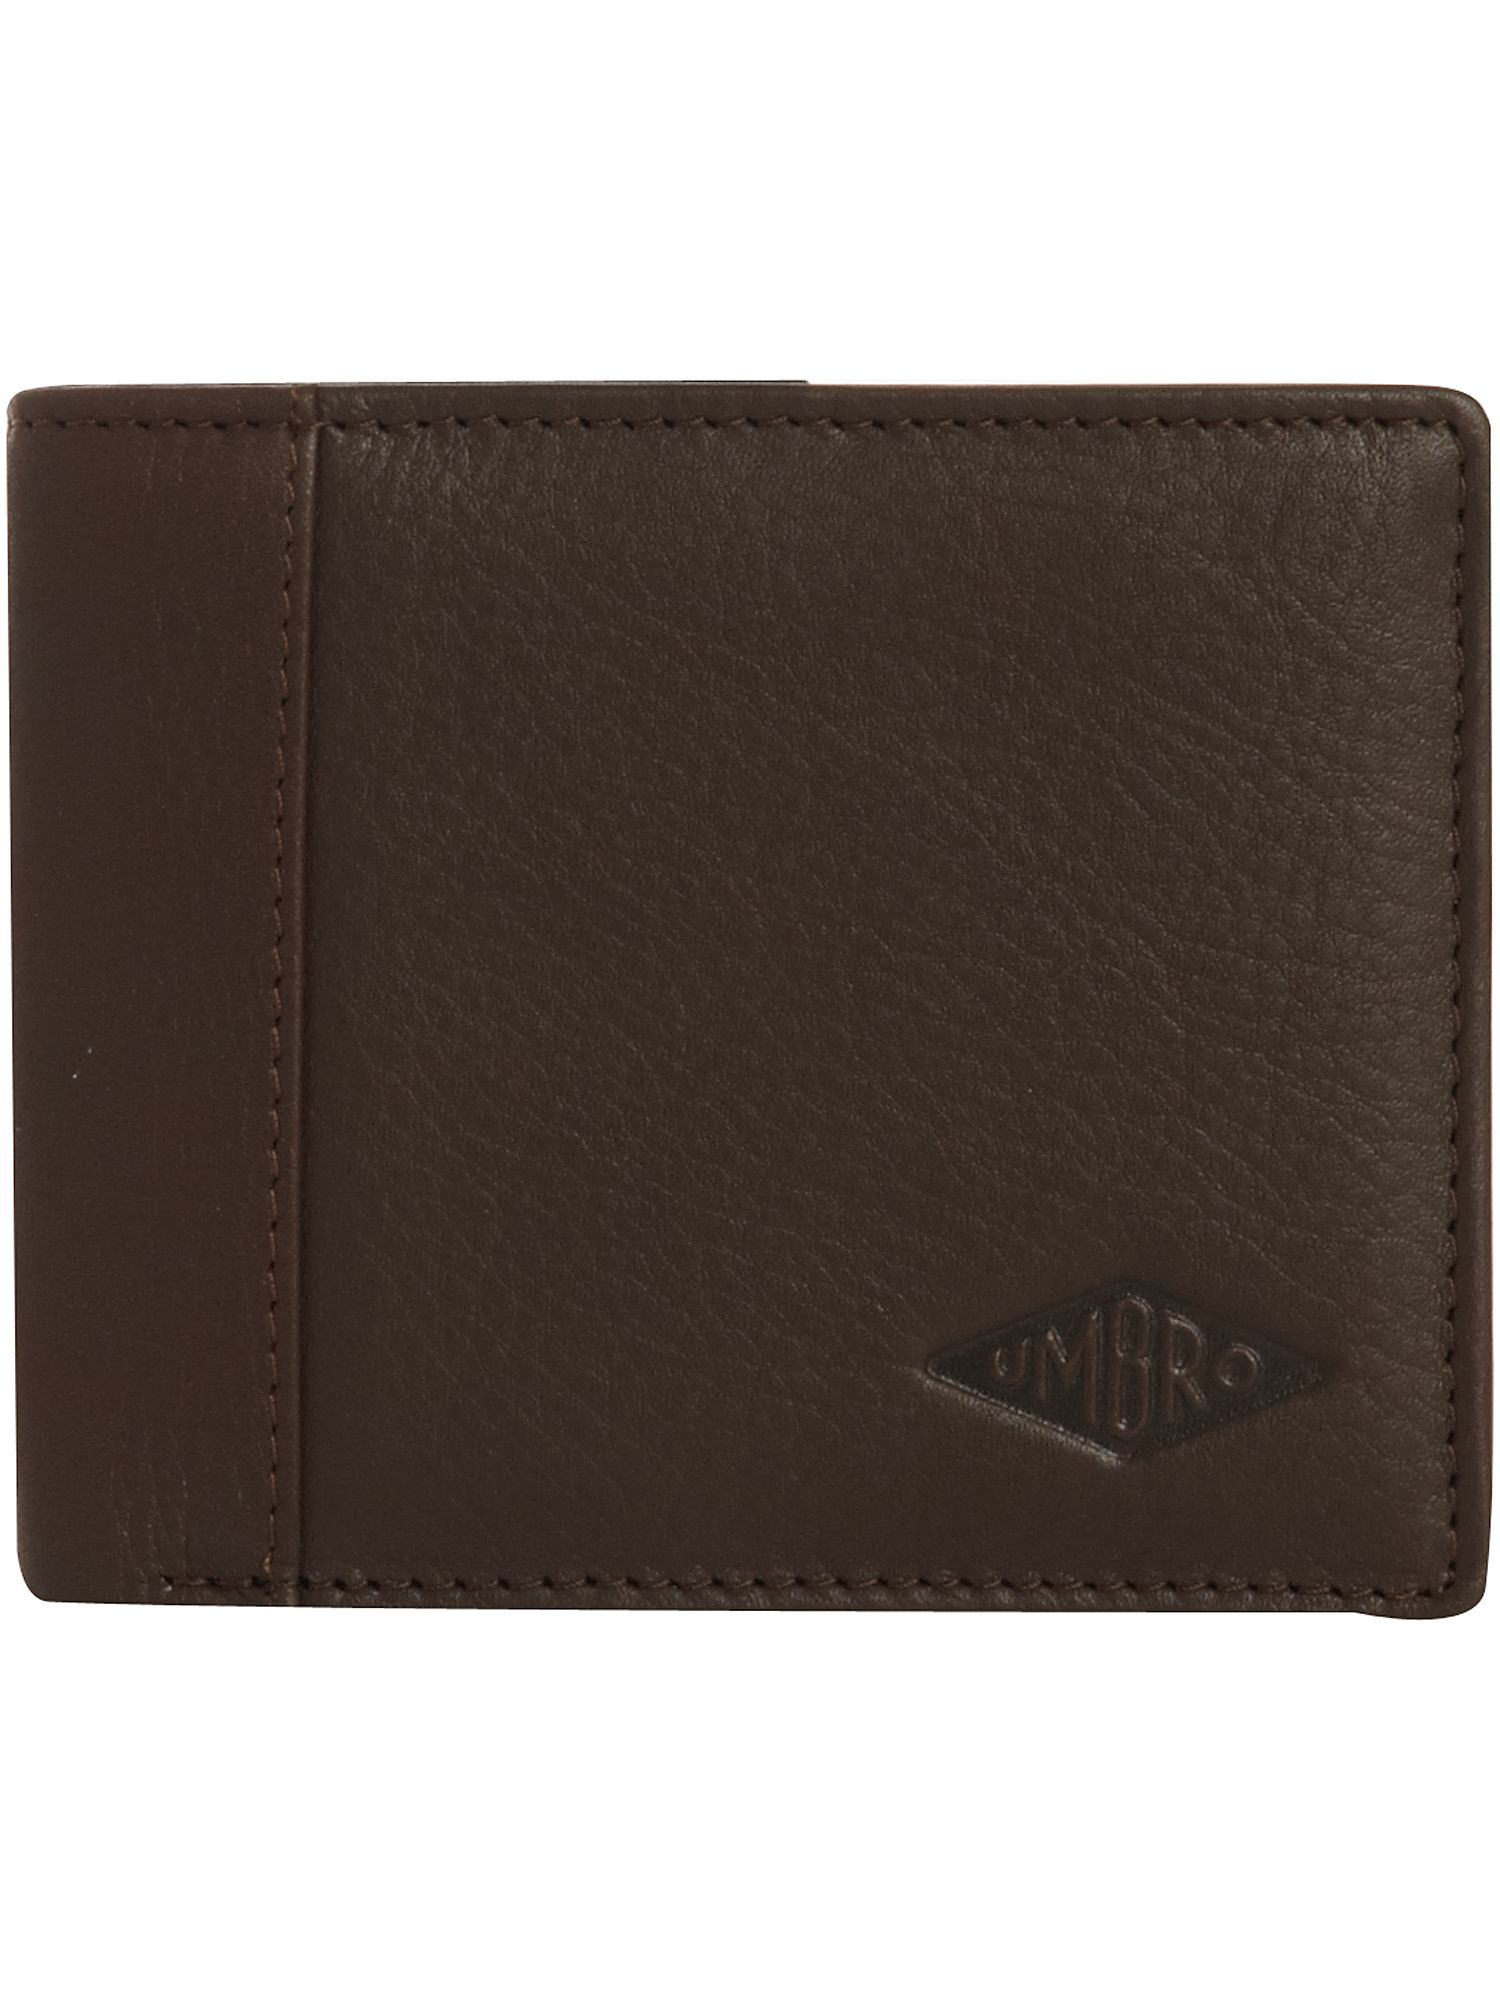 Umbro Bi-fold wallet with printed women on inside Brown product image